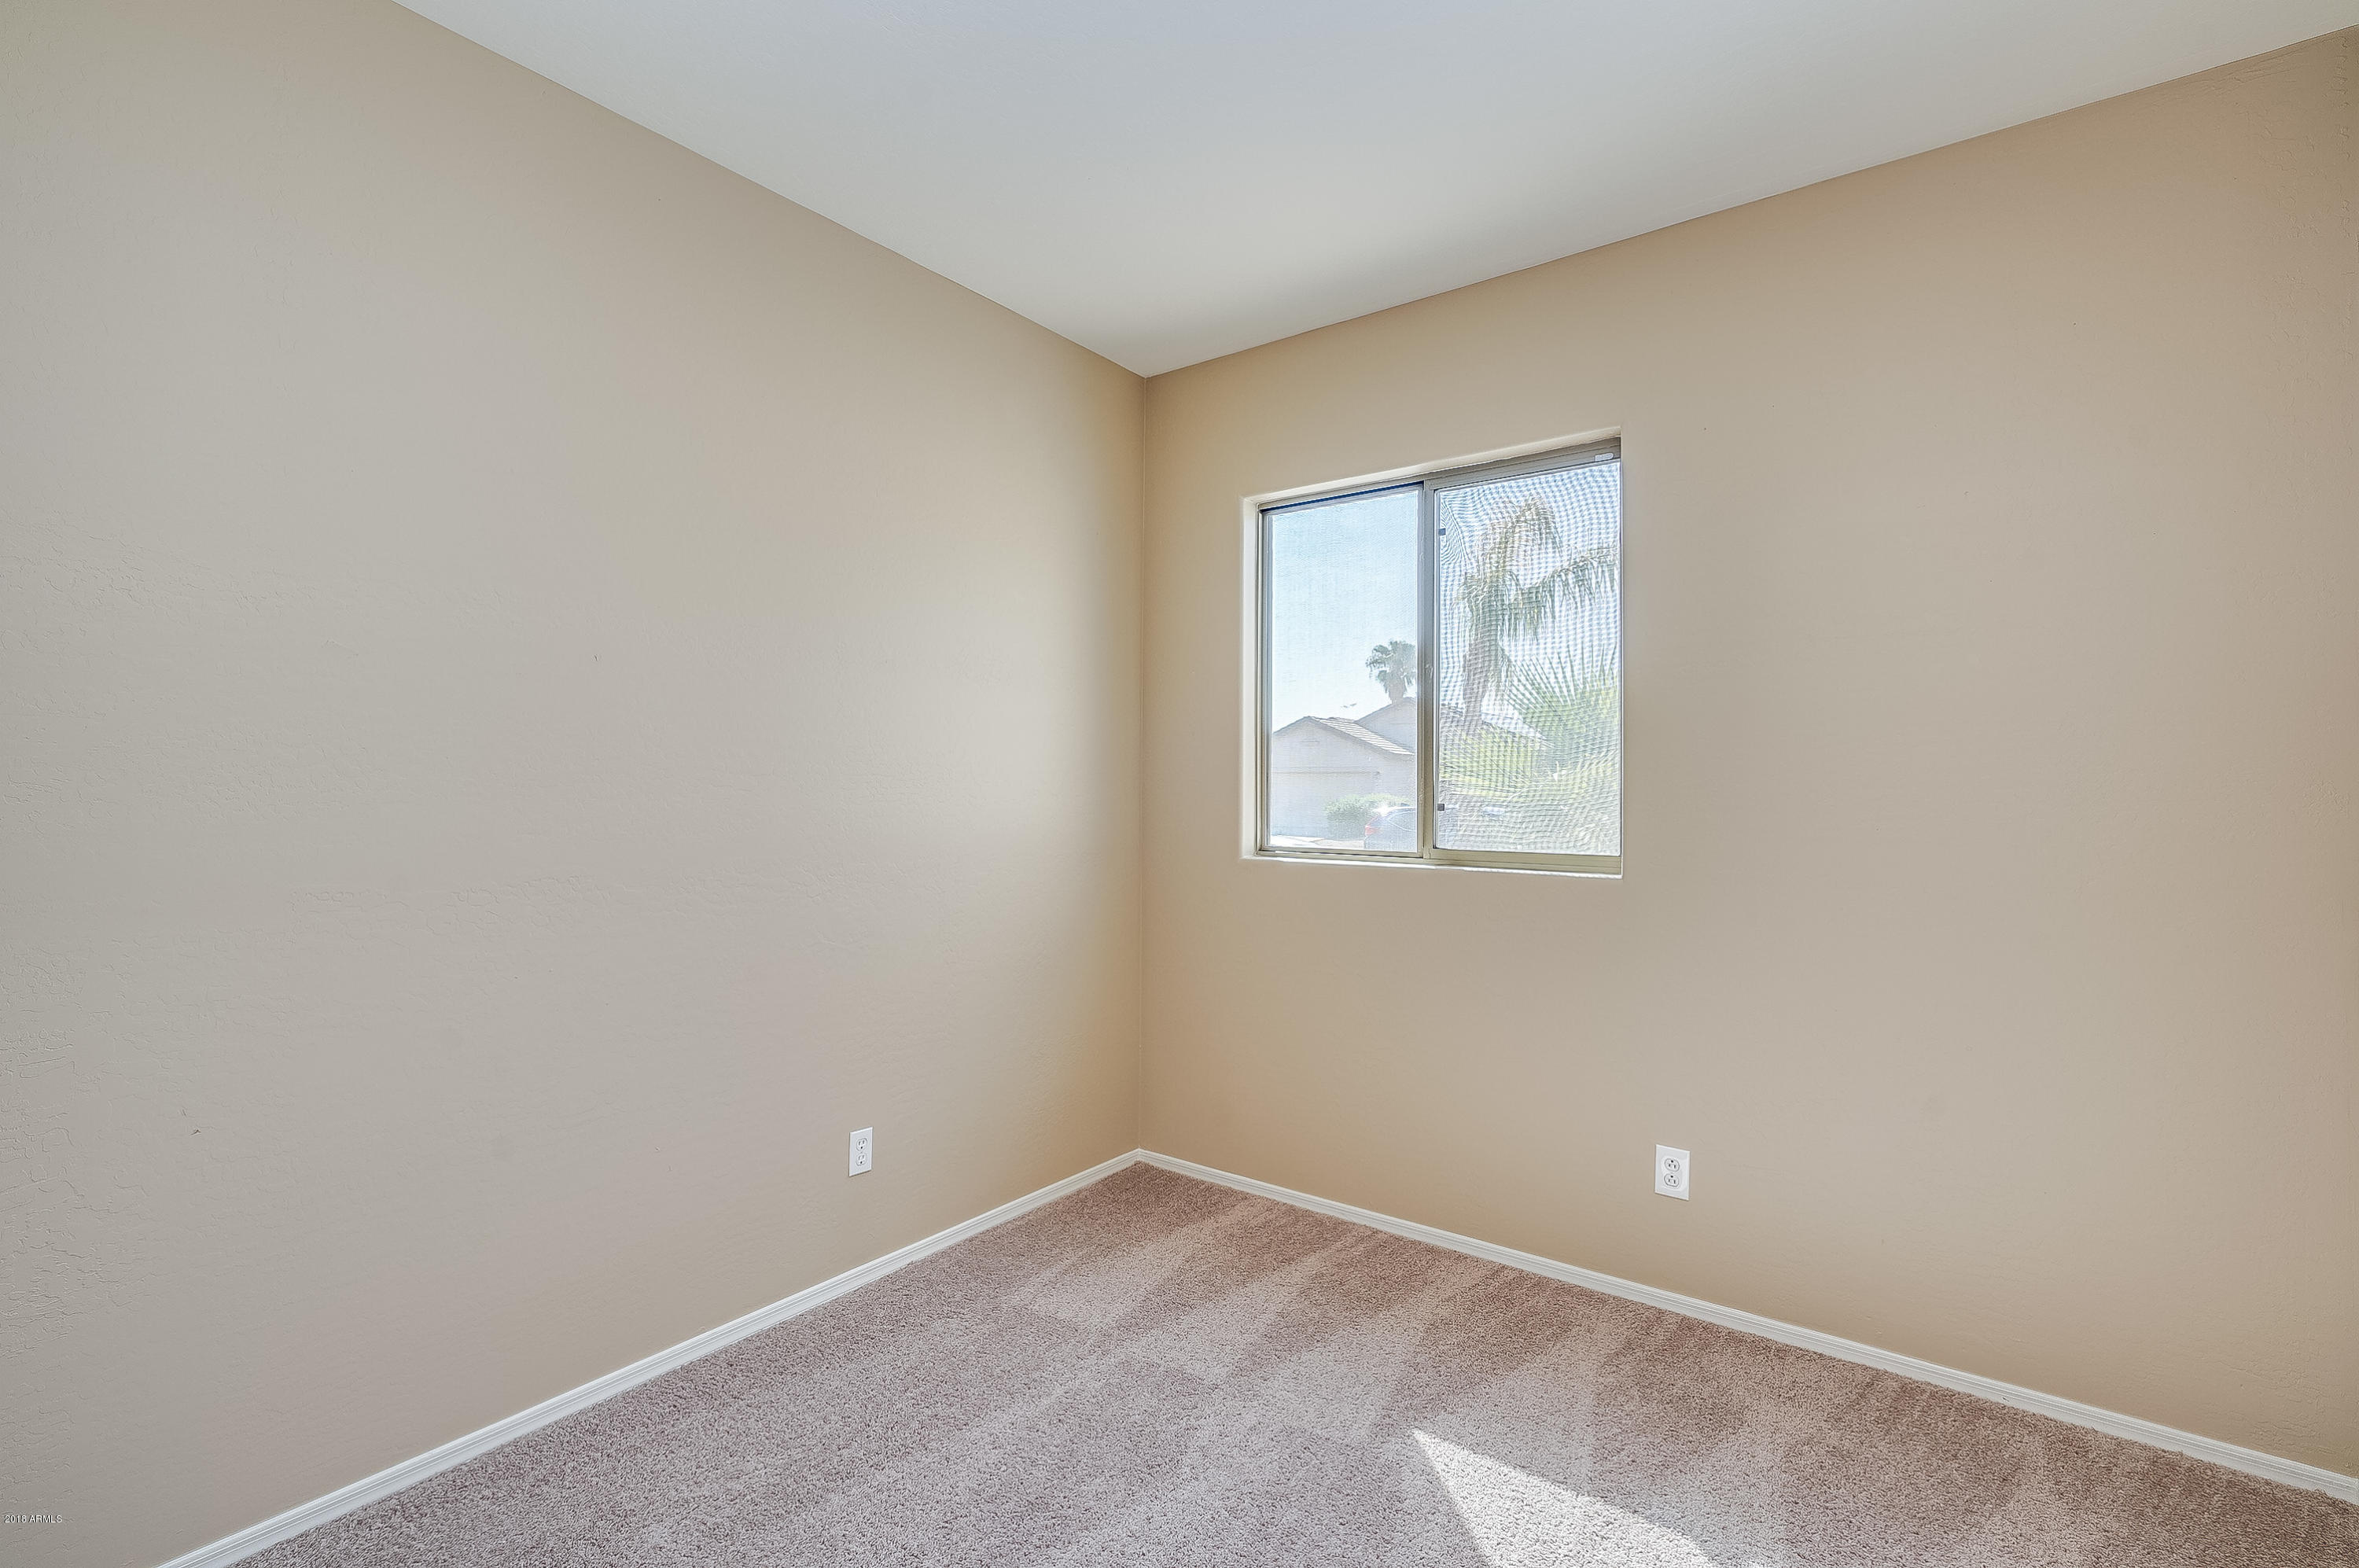 16802 W MANCHESTER Drive Surprise, AZ 85374 - MLS #: 5825454